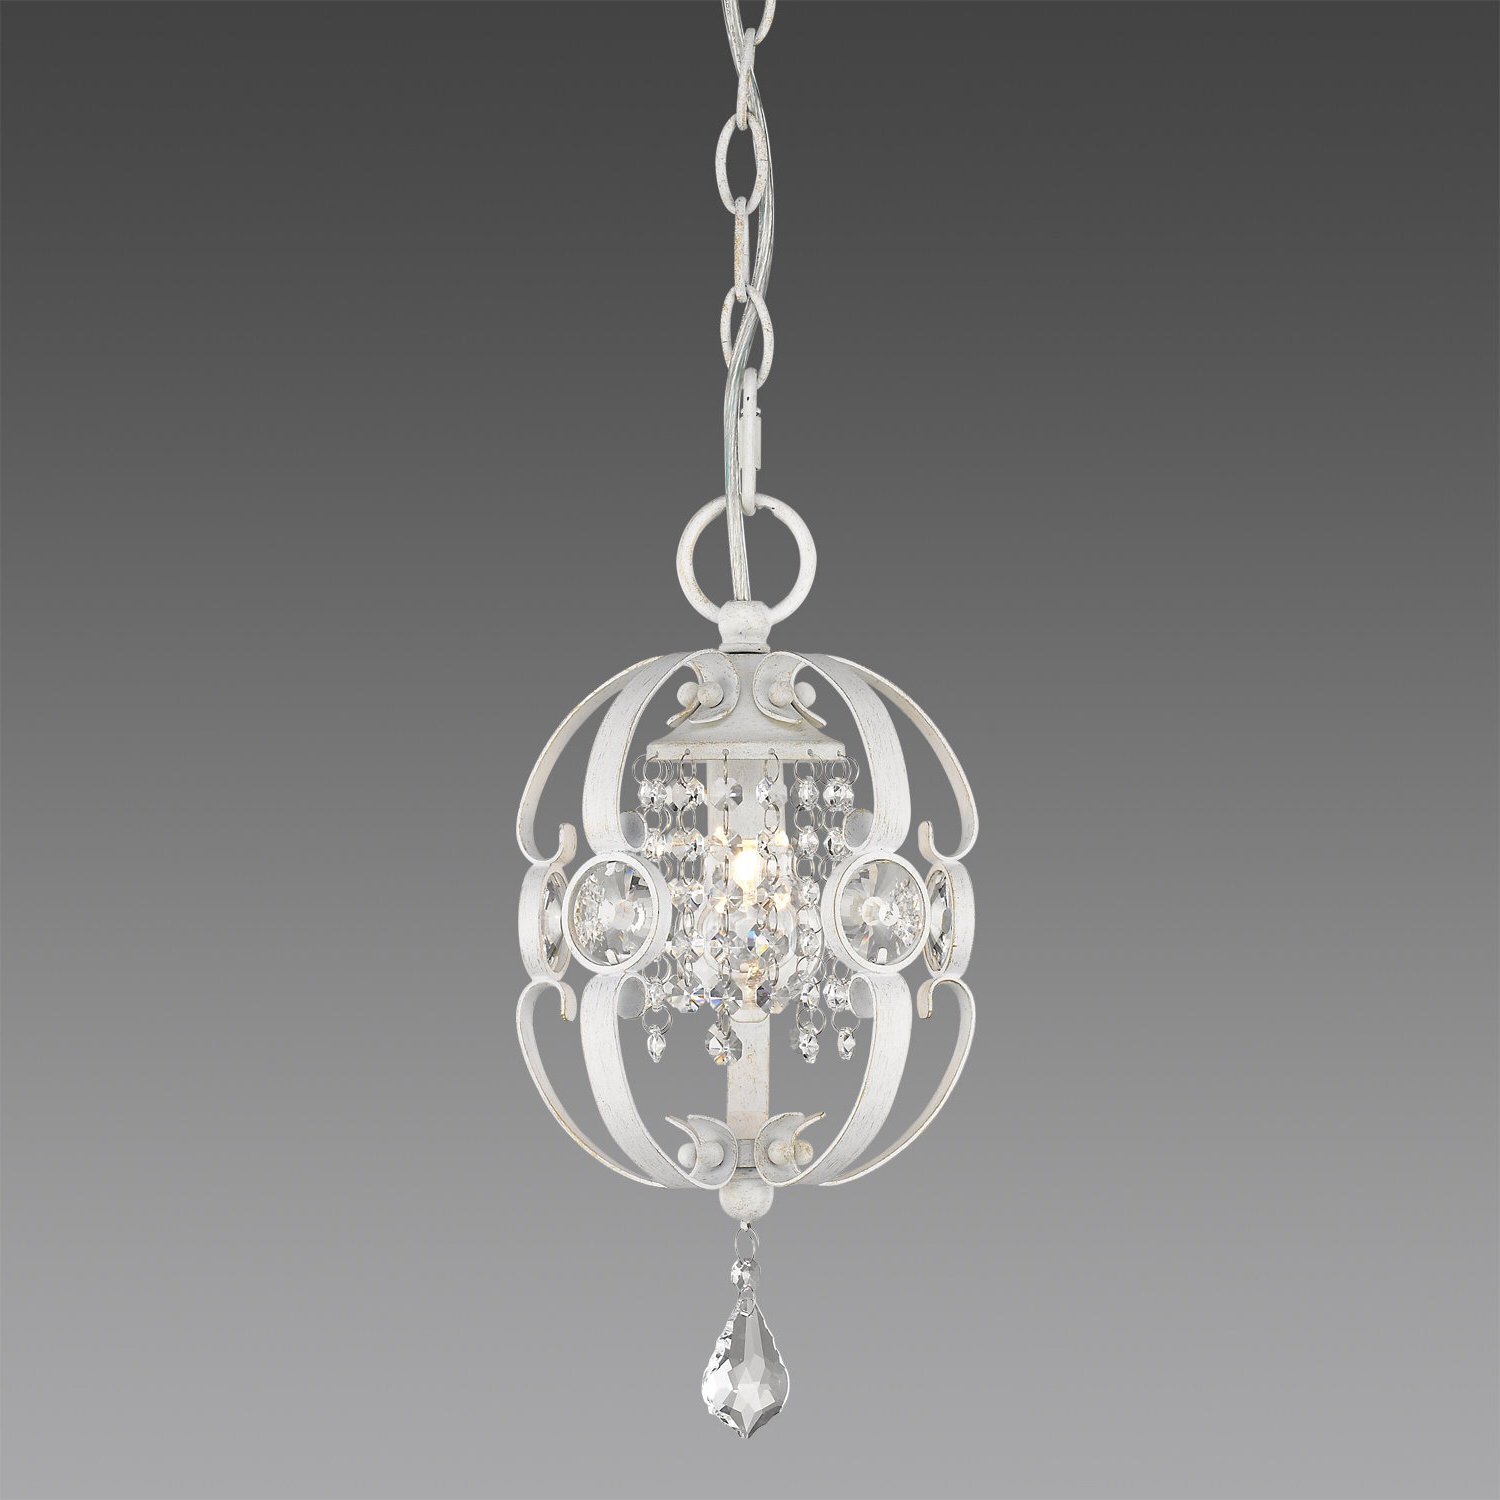 Hardouin 1 Light Single Geometric Pendant Within Most Recently Released Dilley 1 Light Unique / Statement Geometric Pendants (View 12 of 20)